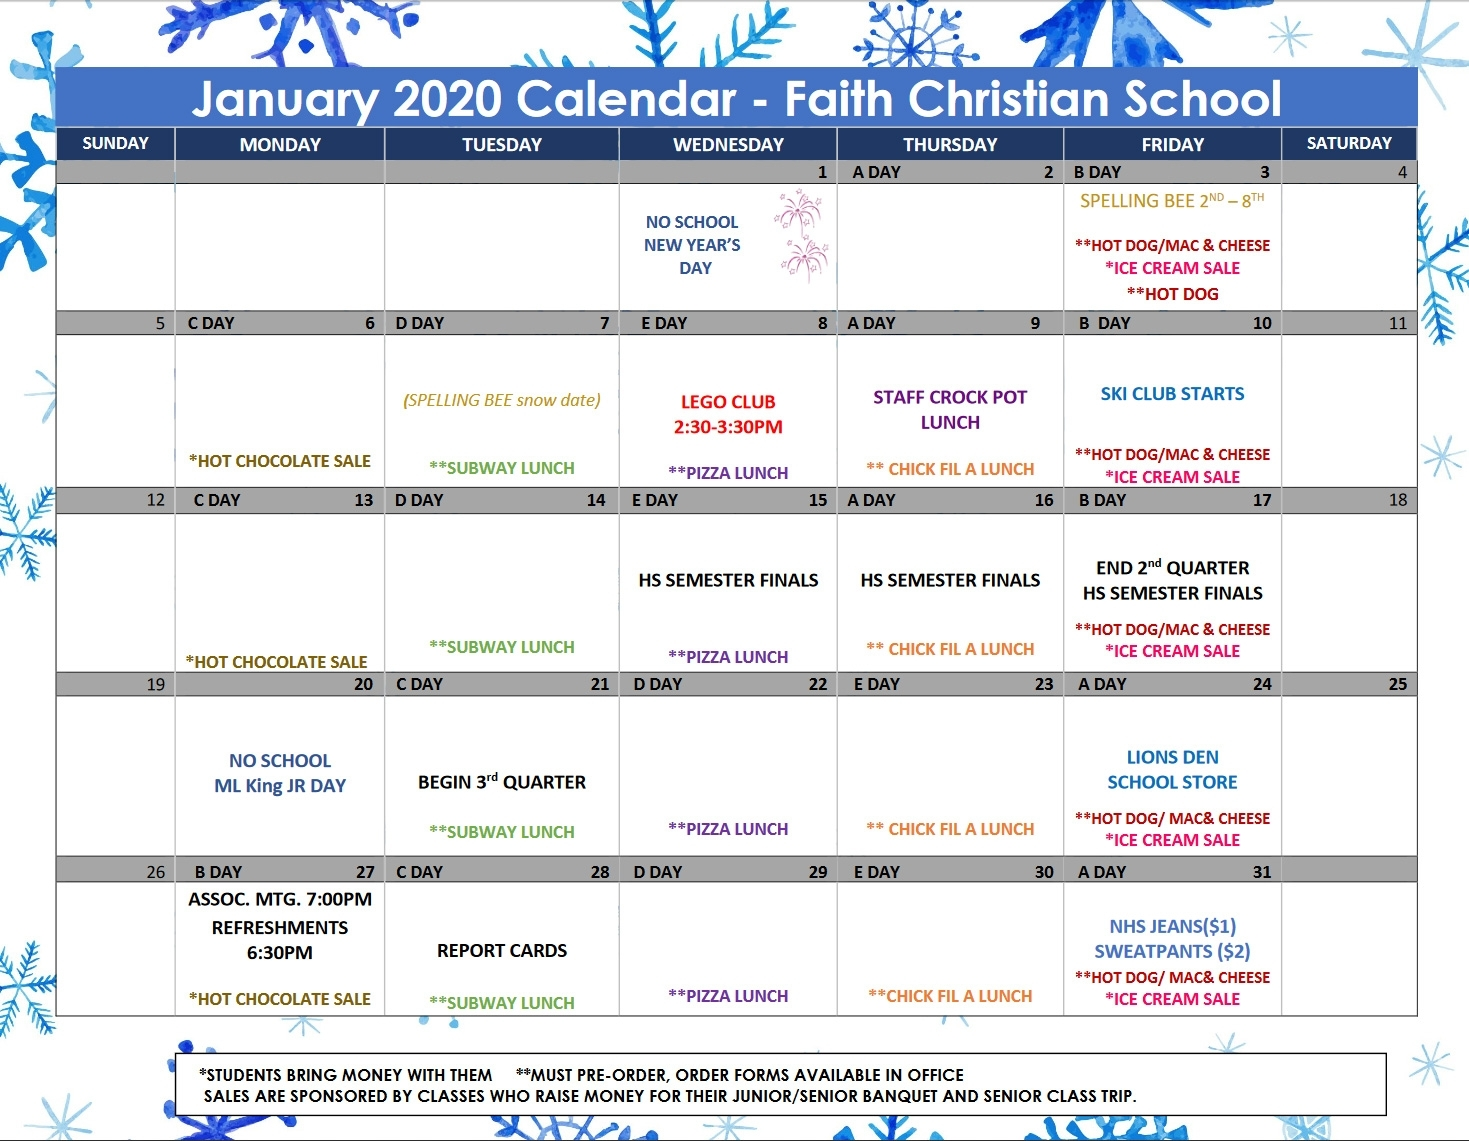 January 2020 Calendar – Faith Christian School intended for Chic Fil A 2020 Calendars